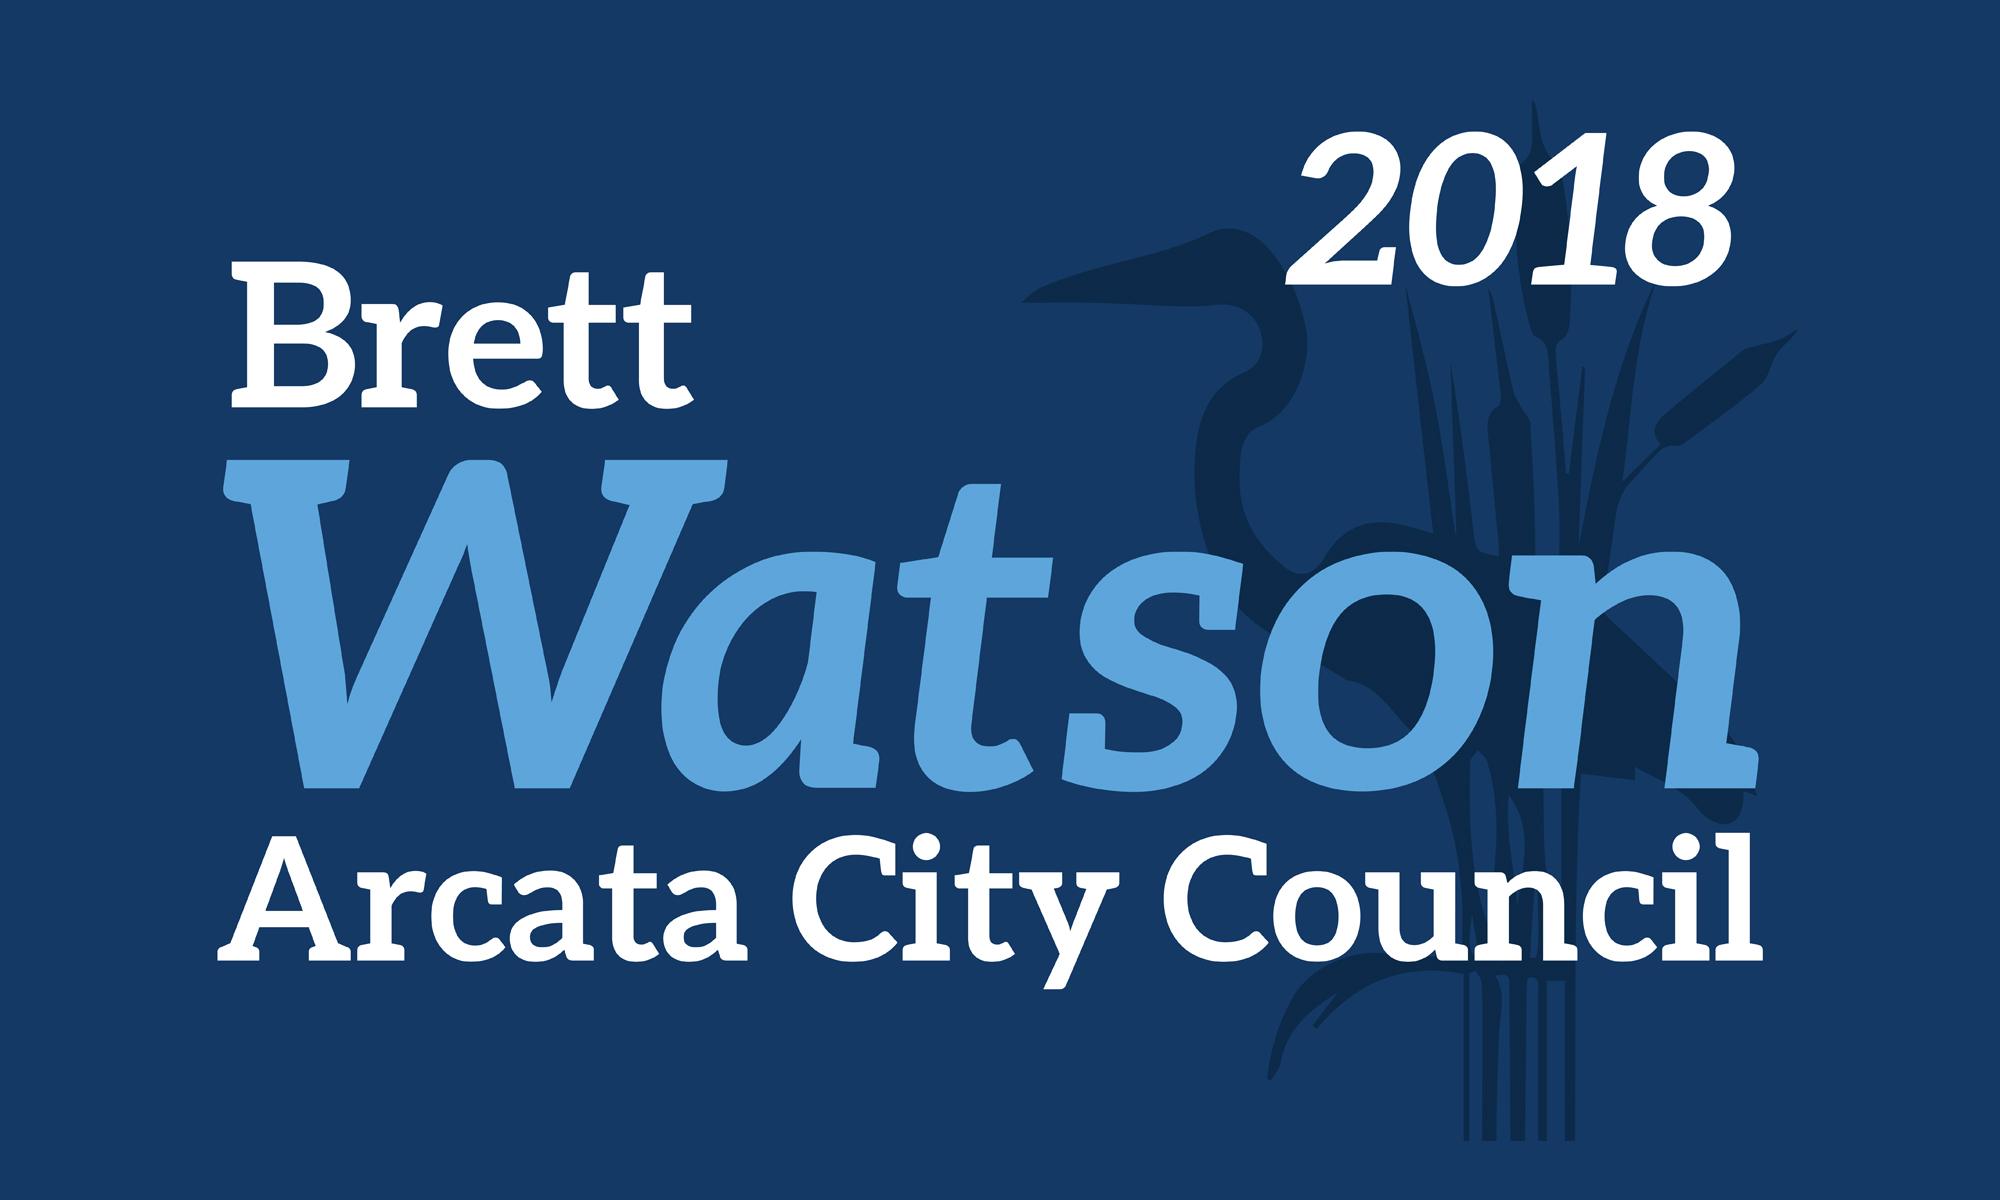 Brett Watson for Arcata City Council